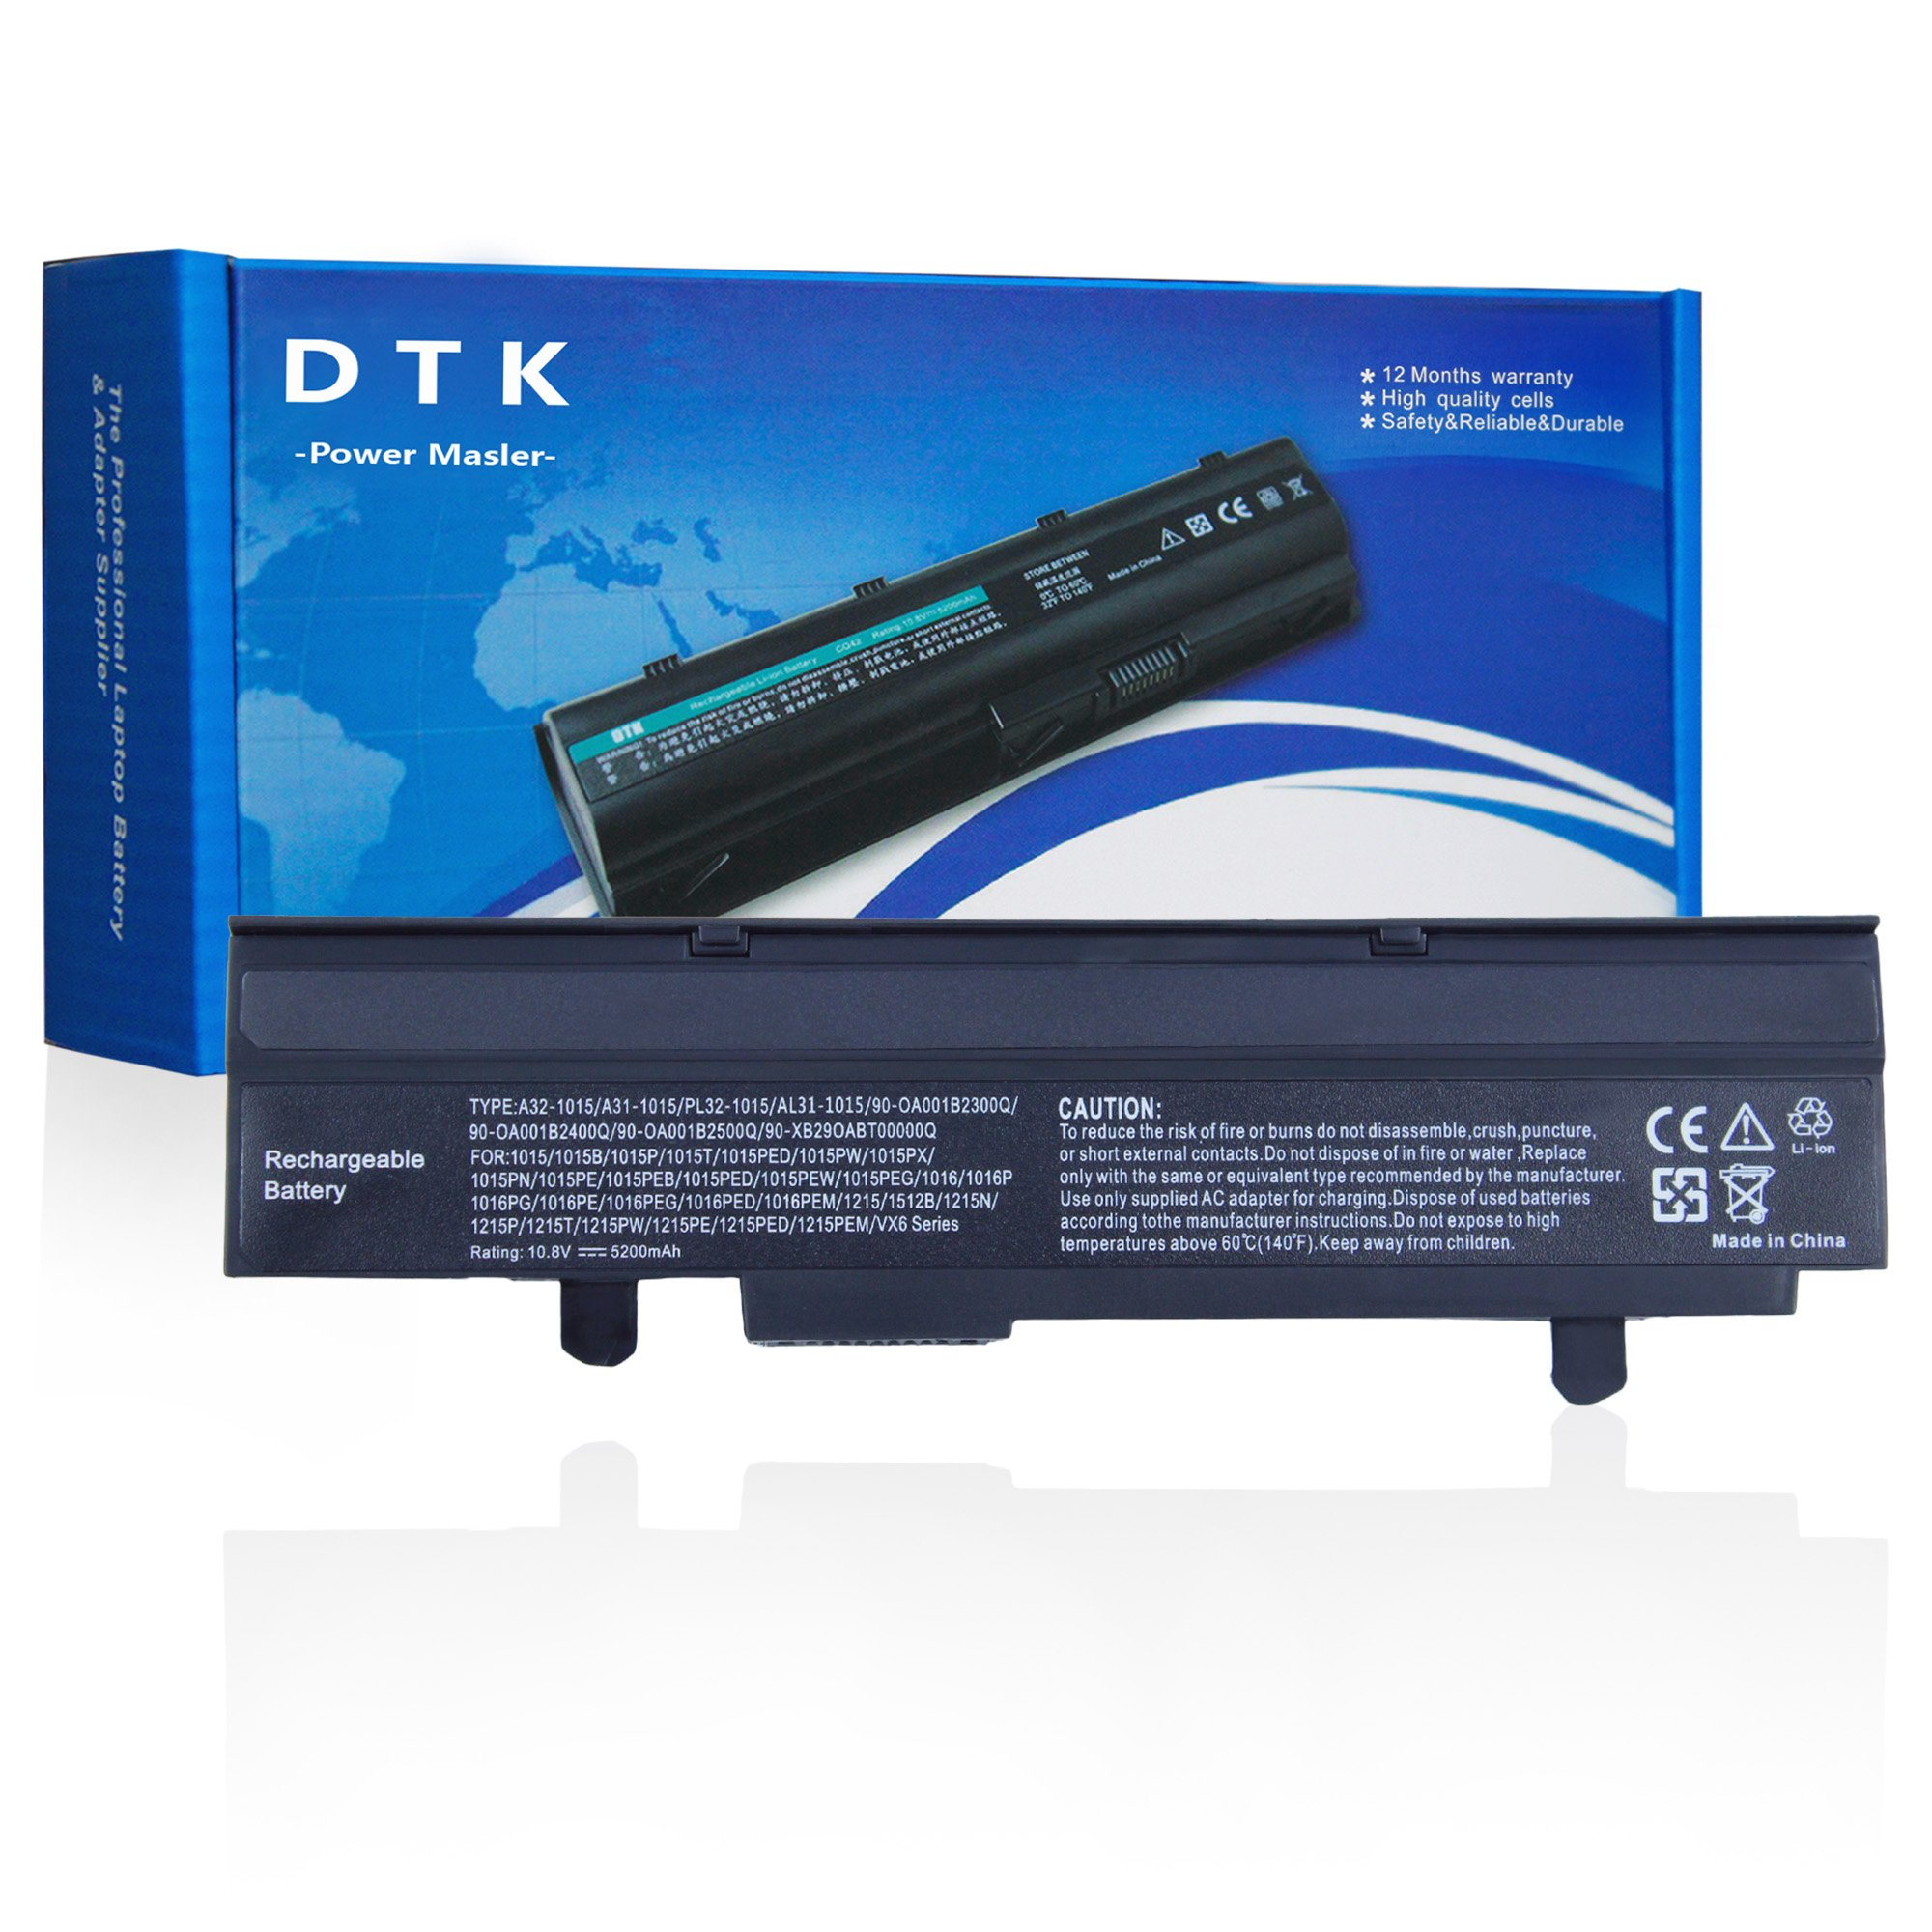 DTK 10.8V 5200mAh Laptop Battery Replacement for ASUS Eee PC 1015 Series 1015B 1015P 1016 Series 1215 1215B VX6 Series / A31-1015 A32-1015 AL31-1015